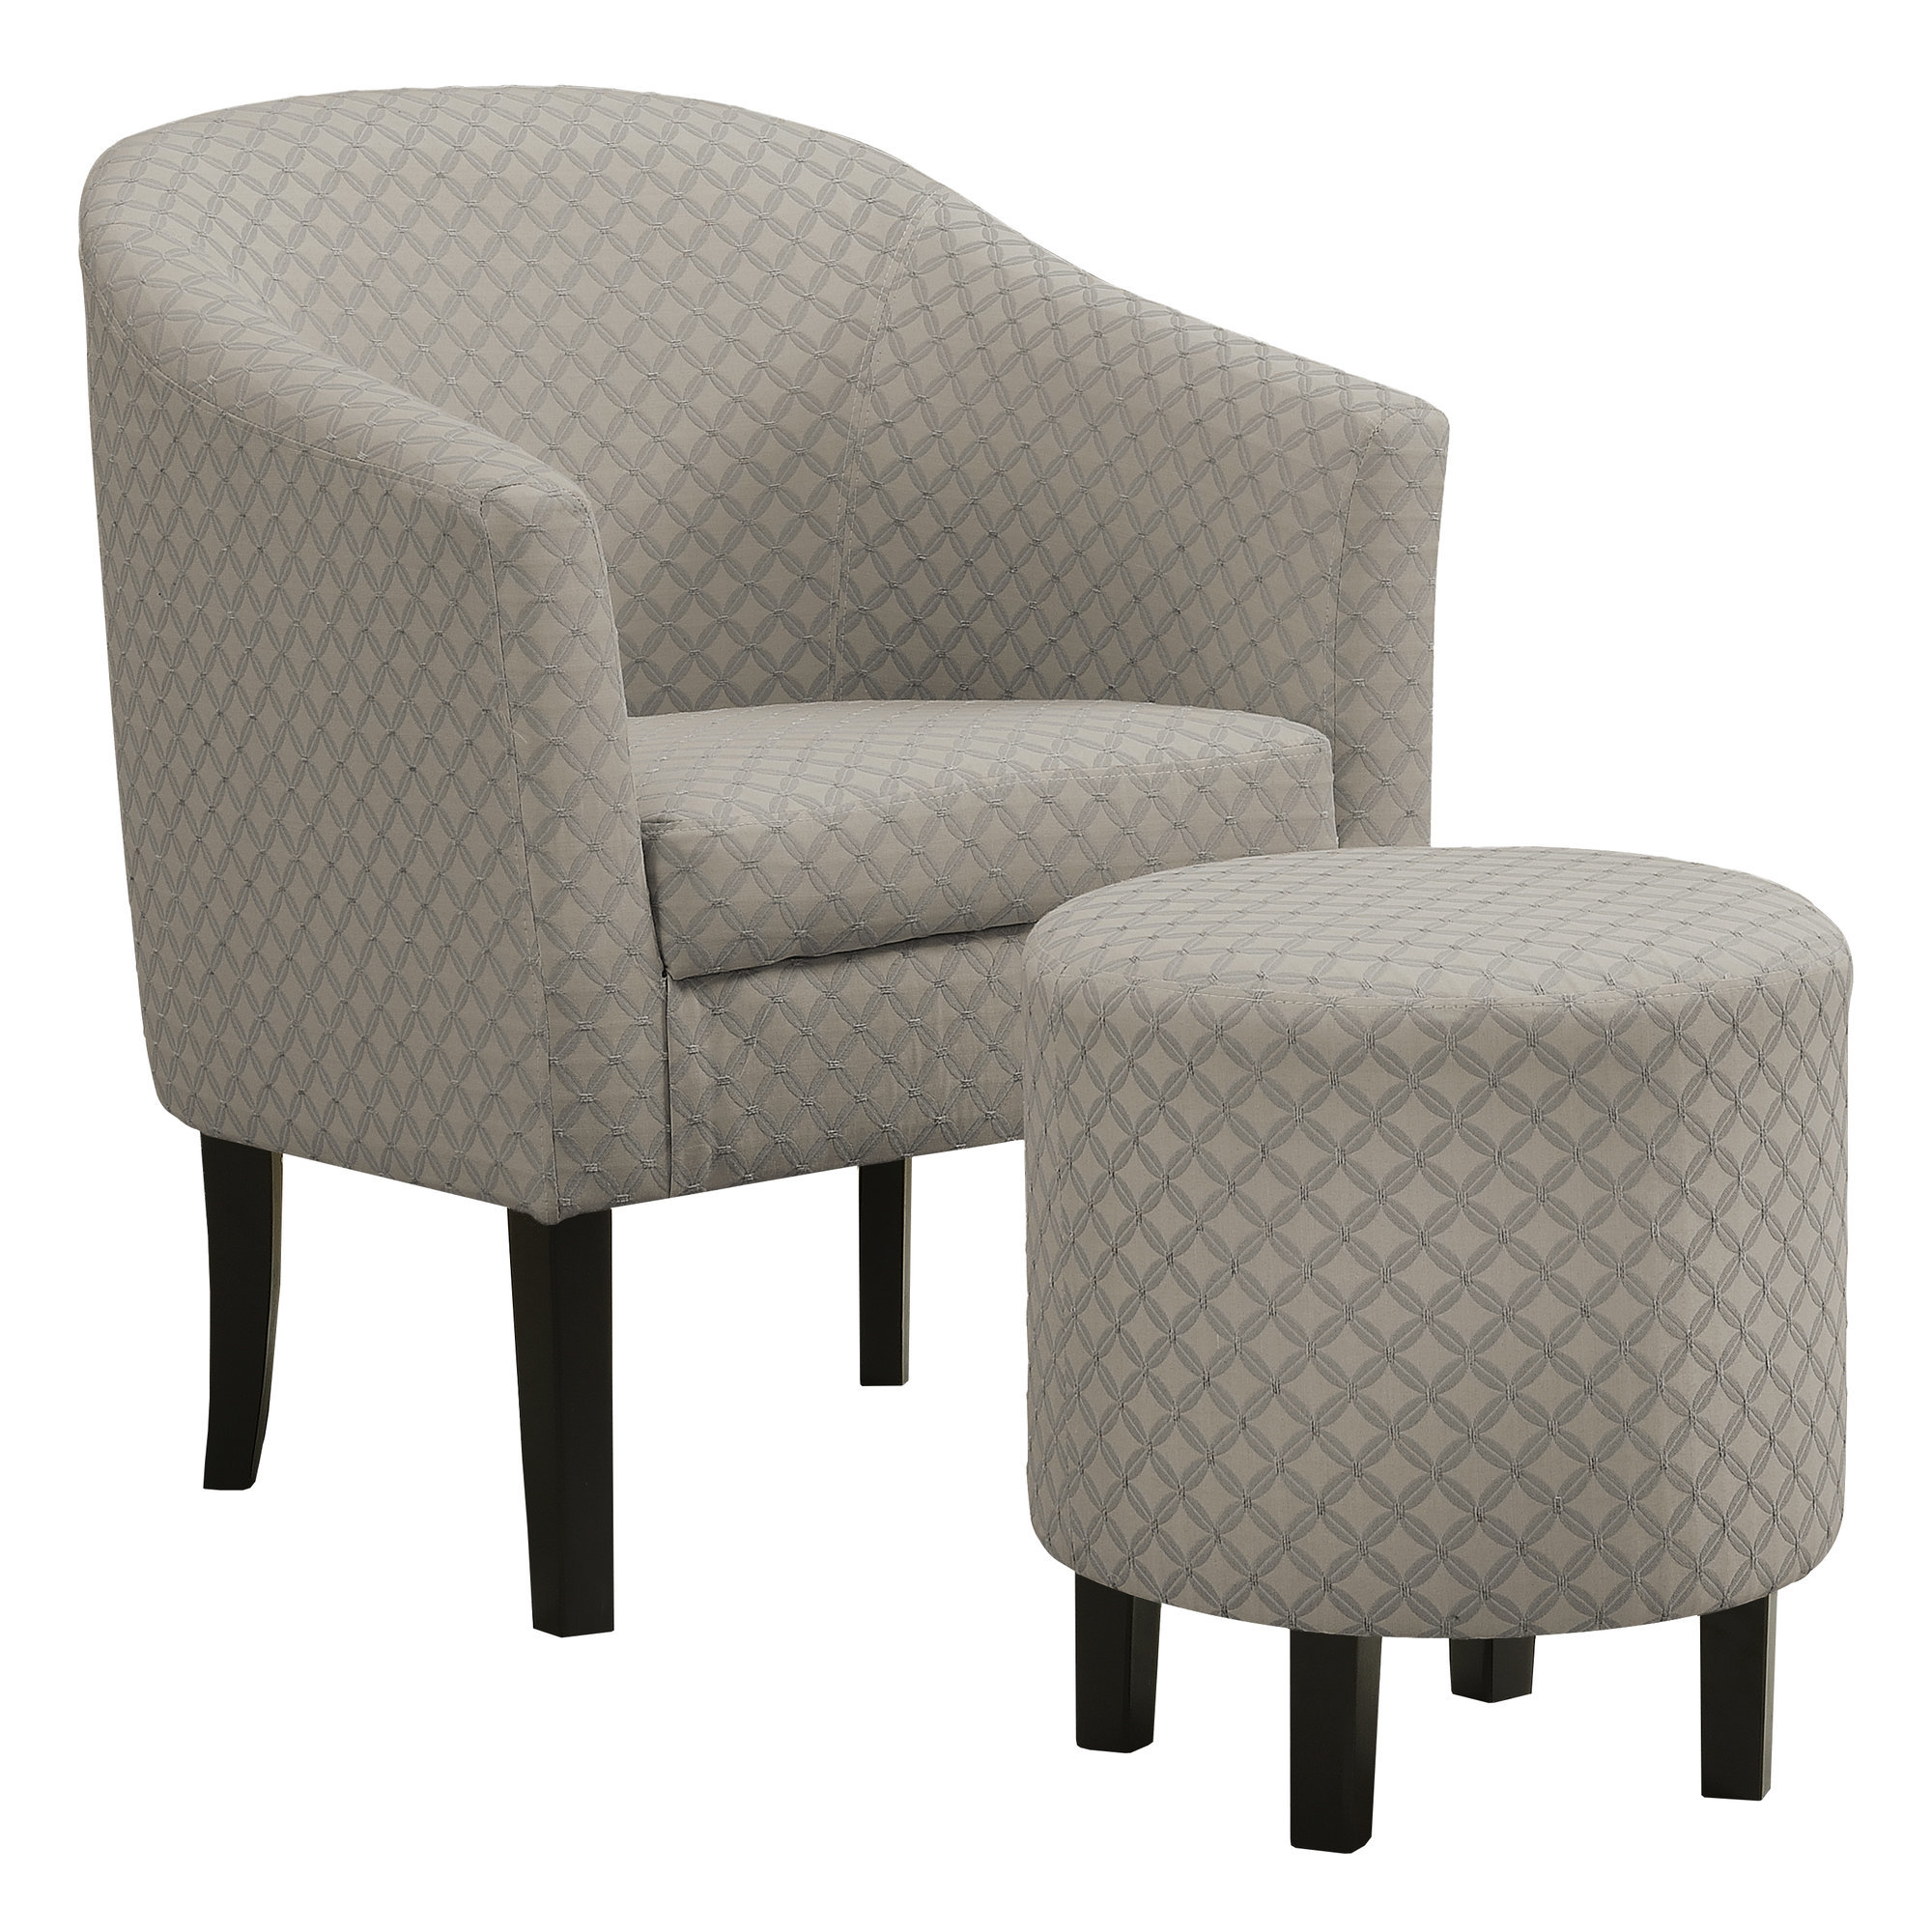 ACCENT CHAIR - 2PCS SET / LIGHT GREY GEOMETRIC FABRIC